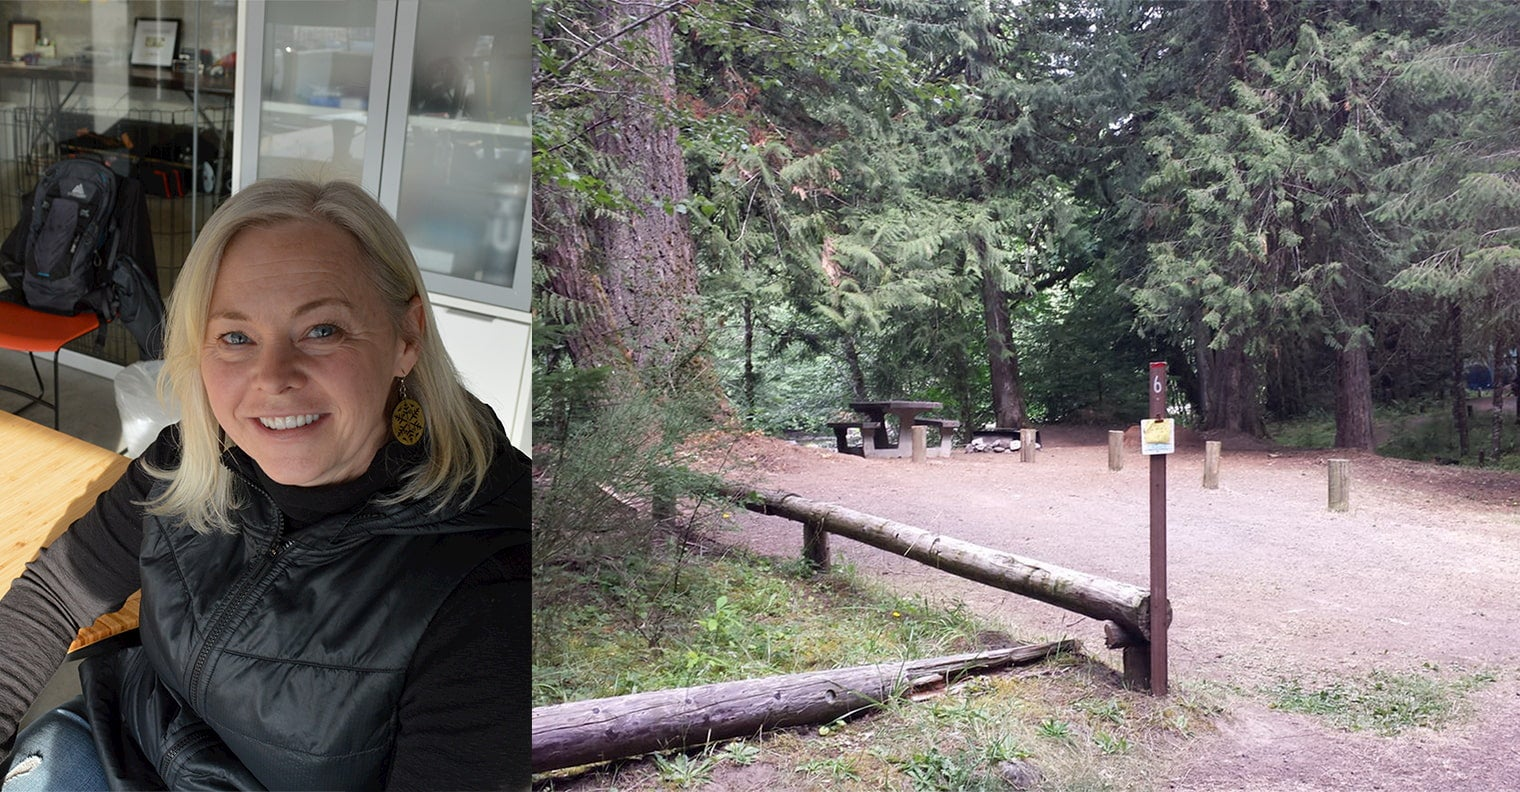 Left image of women smiling at her desk, Right image of clearing in the forest with campground signage and evergreen trees in the background.